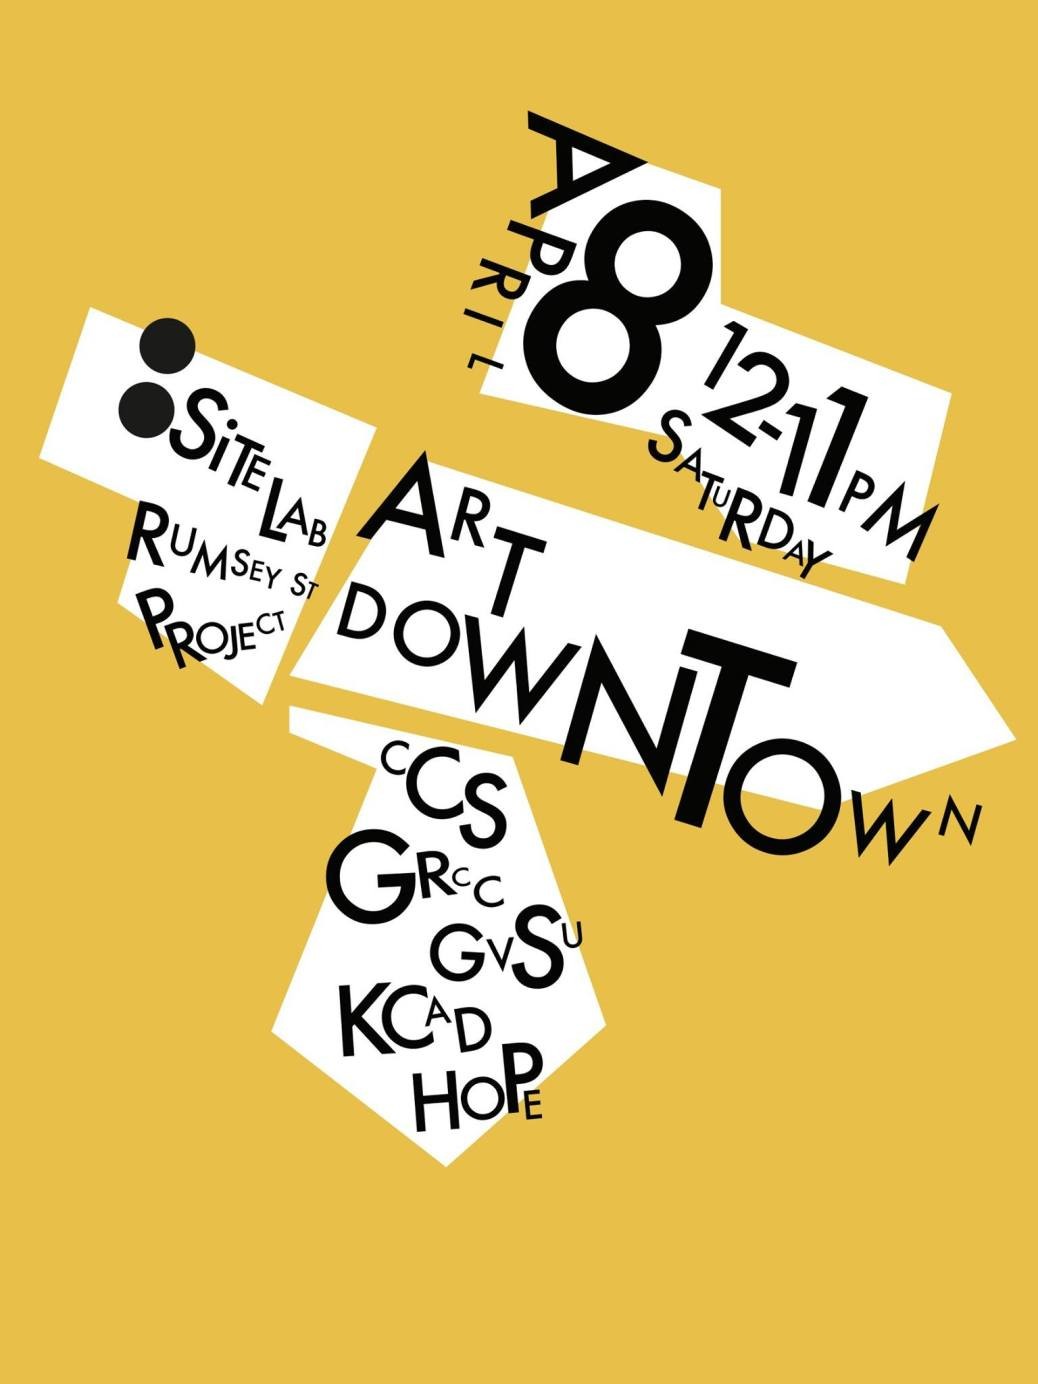 April 8 12-11 p.m. Saturday Site:Lab Rumsey St. Project. Art Downtown. CCS, GRCC, GVSU, KCAD, Hope.